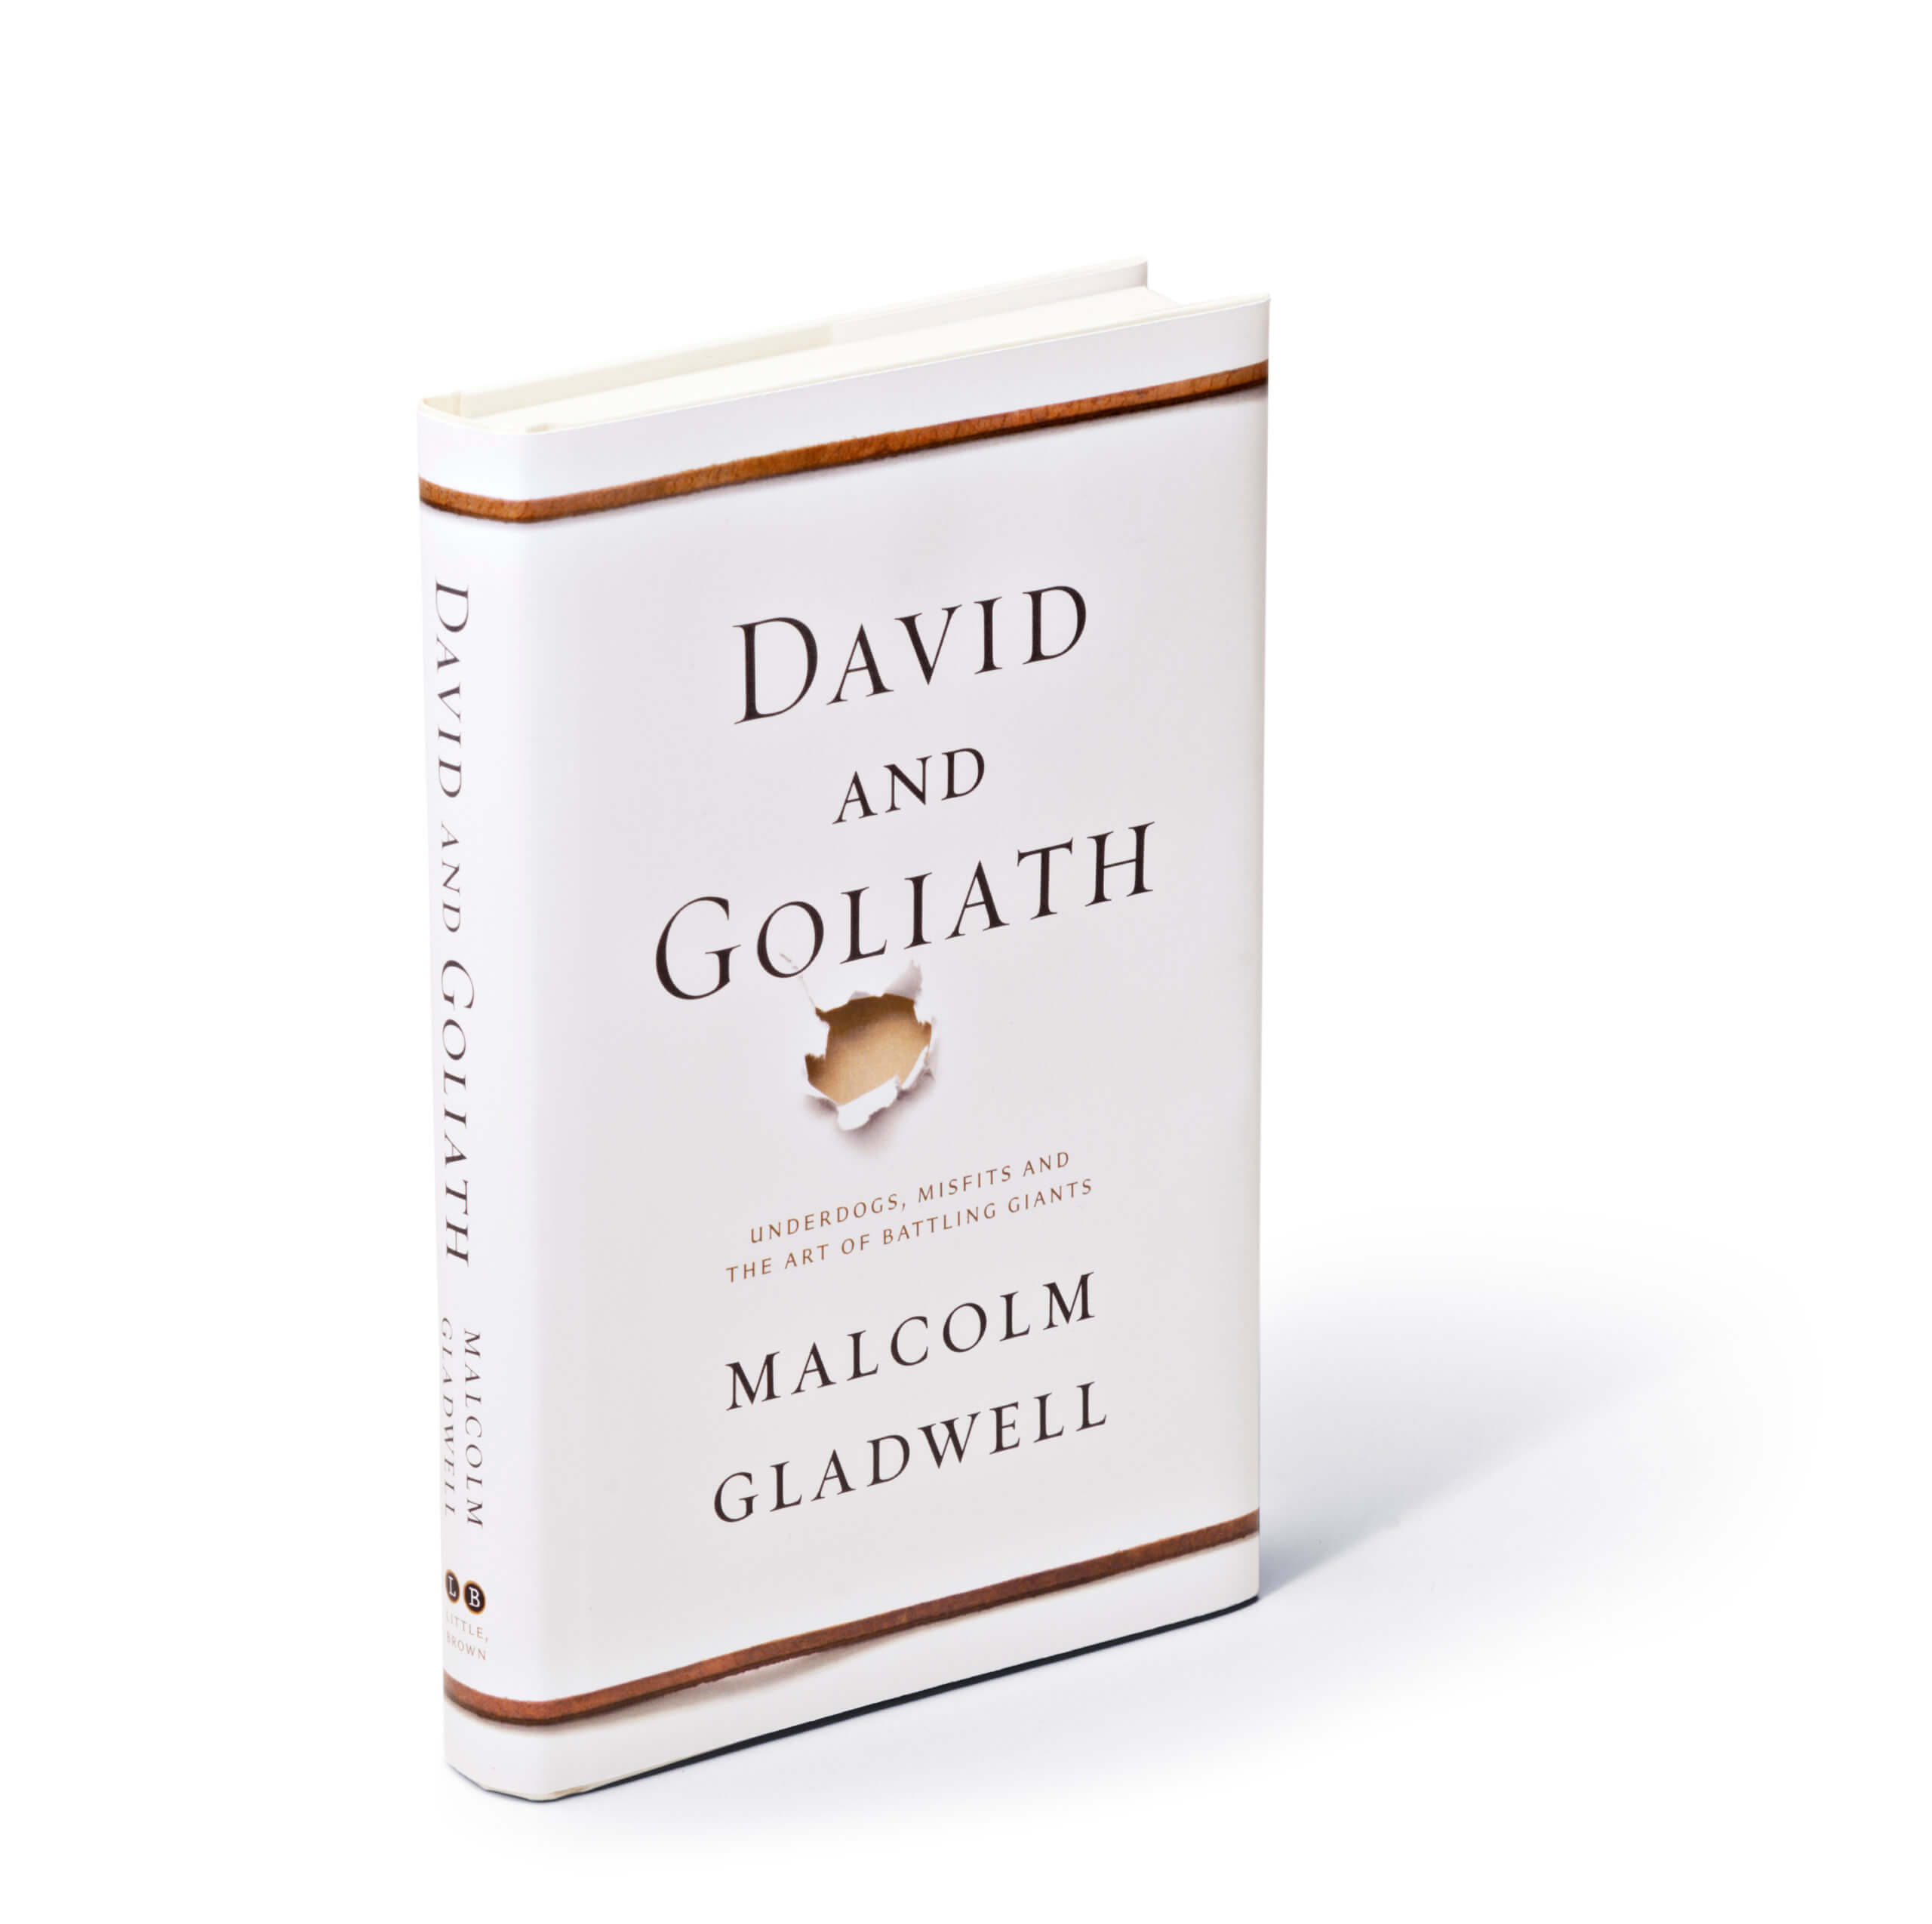 Hole punched through white paper below David and Goliath title on book cover